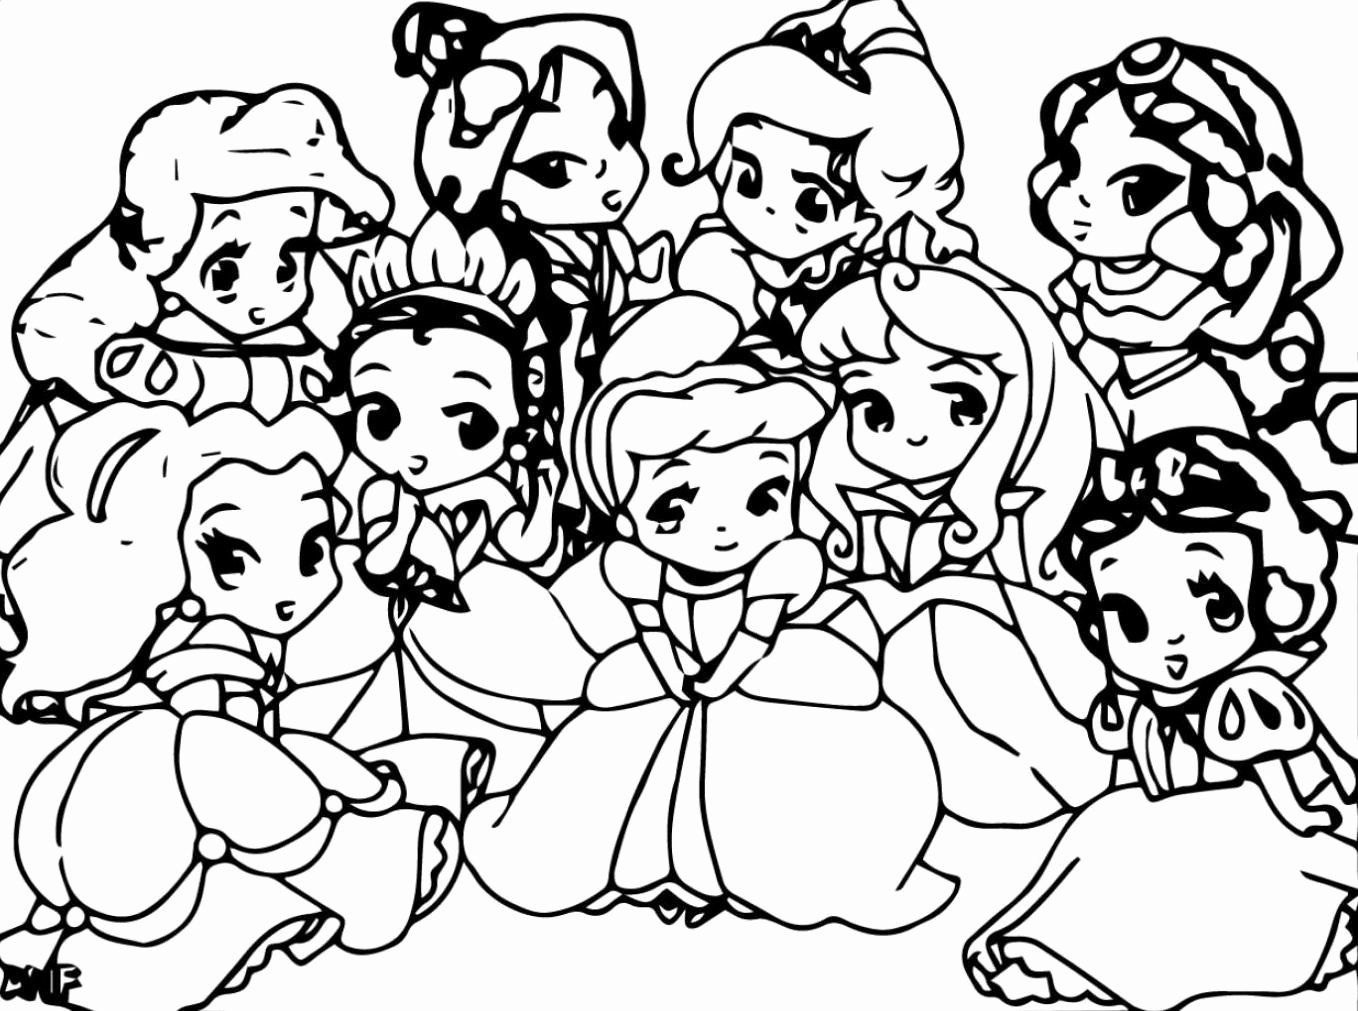 Coloring Pictures Of Disney Characters Unique Walt Disney Coloring Pages Simba Character Disney Princess Coloring Pages Cute Coloring Pages Baby Coloring Pages